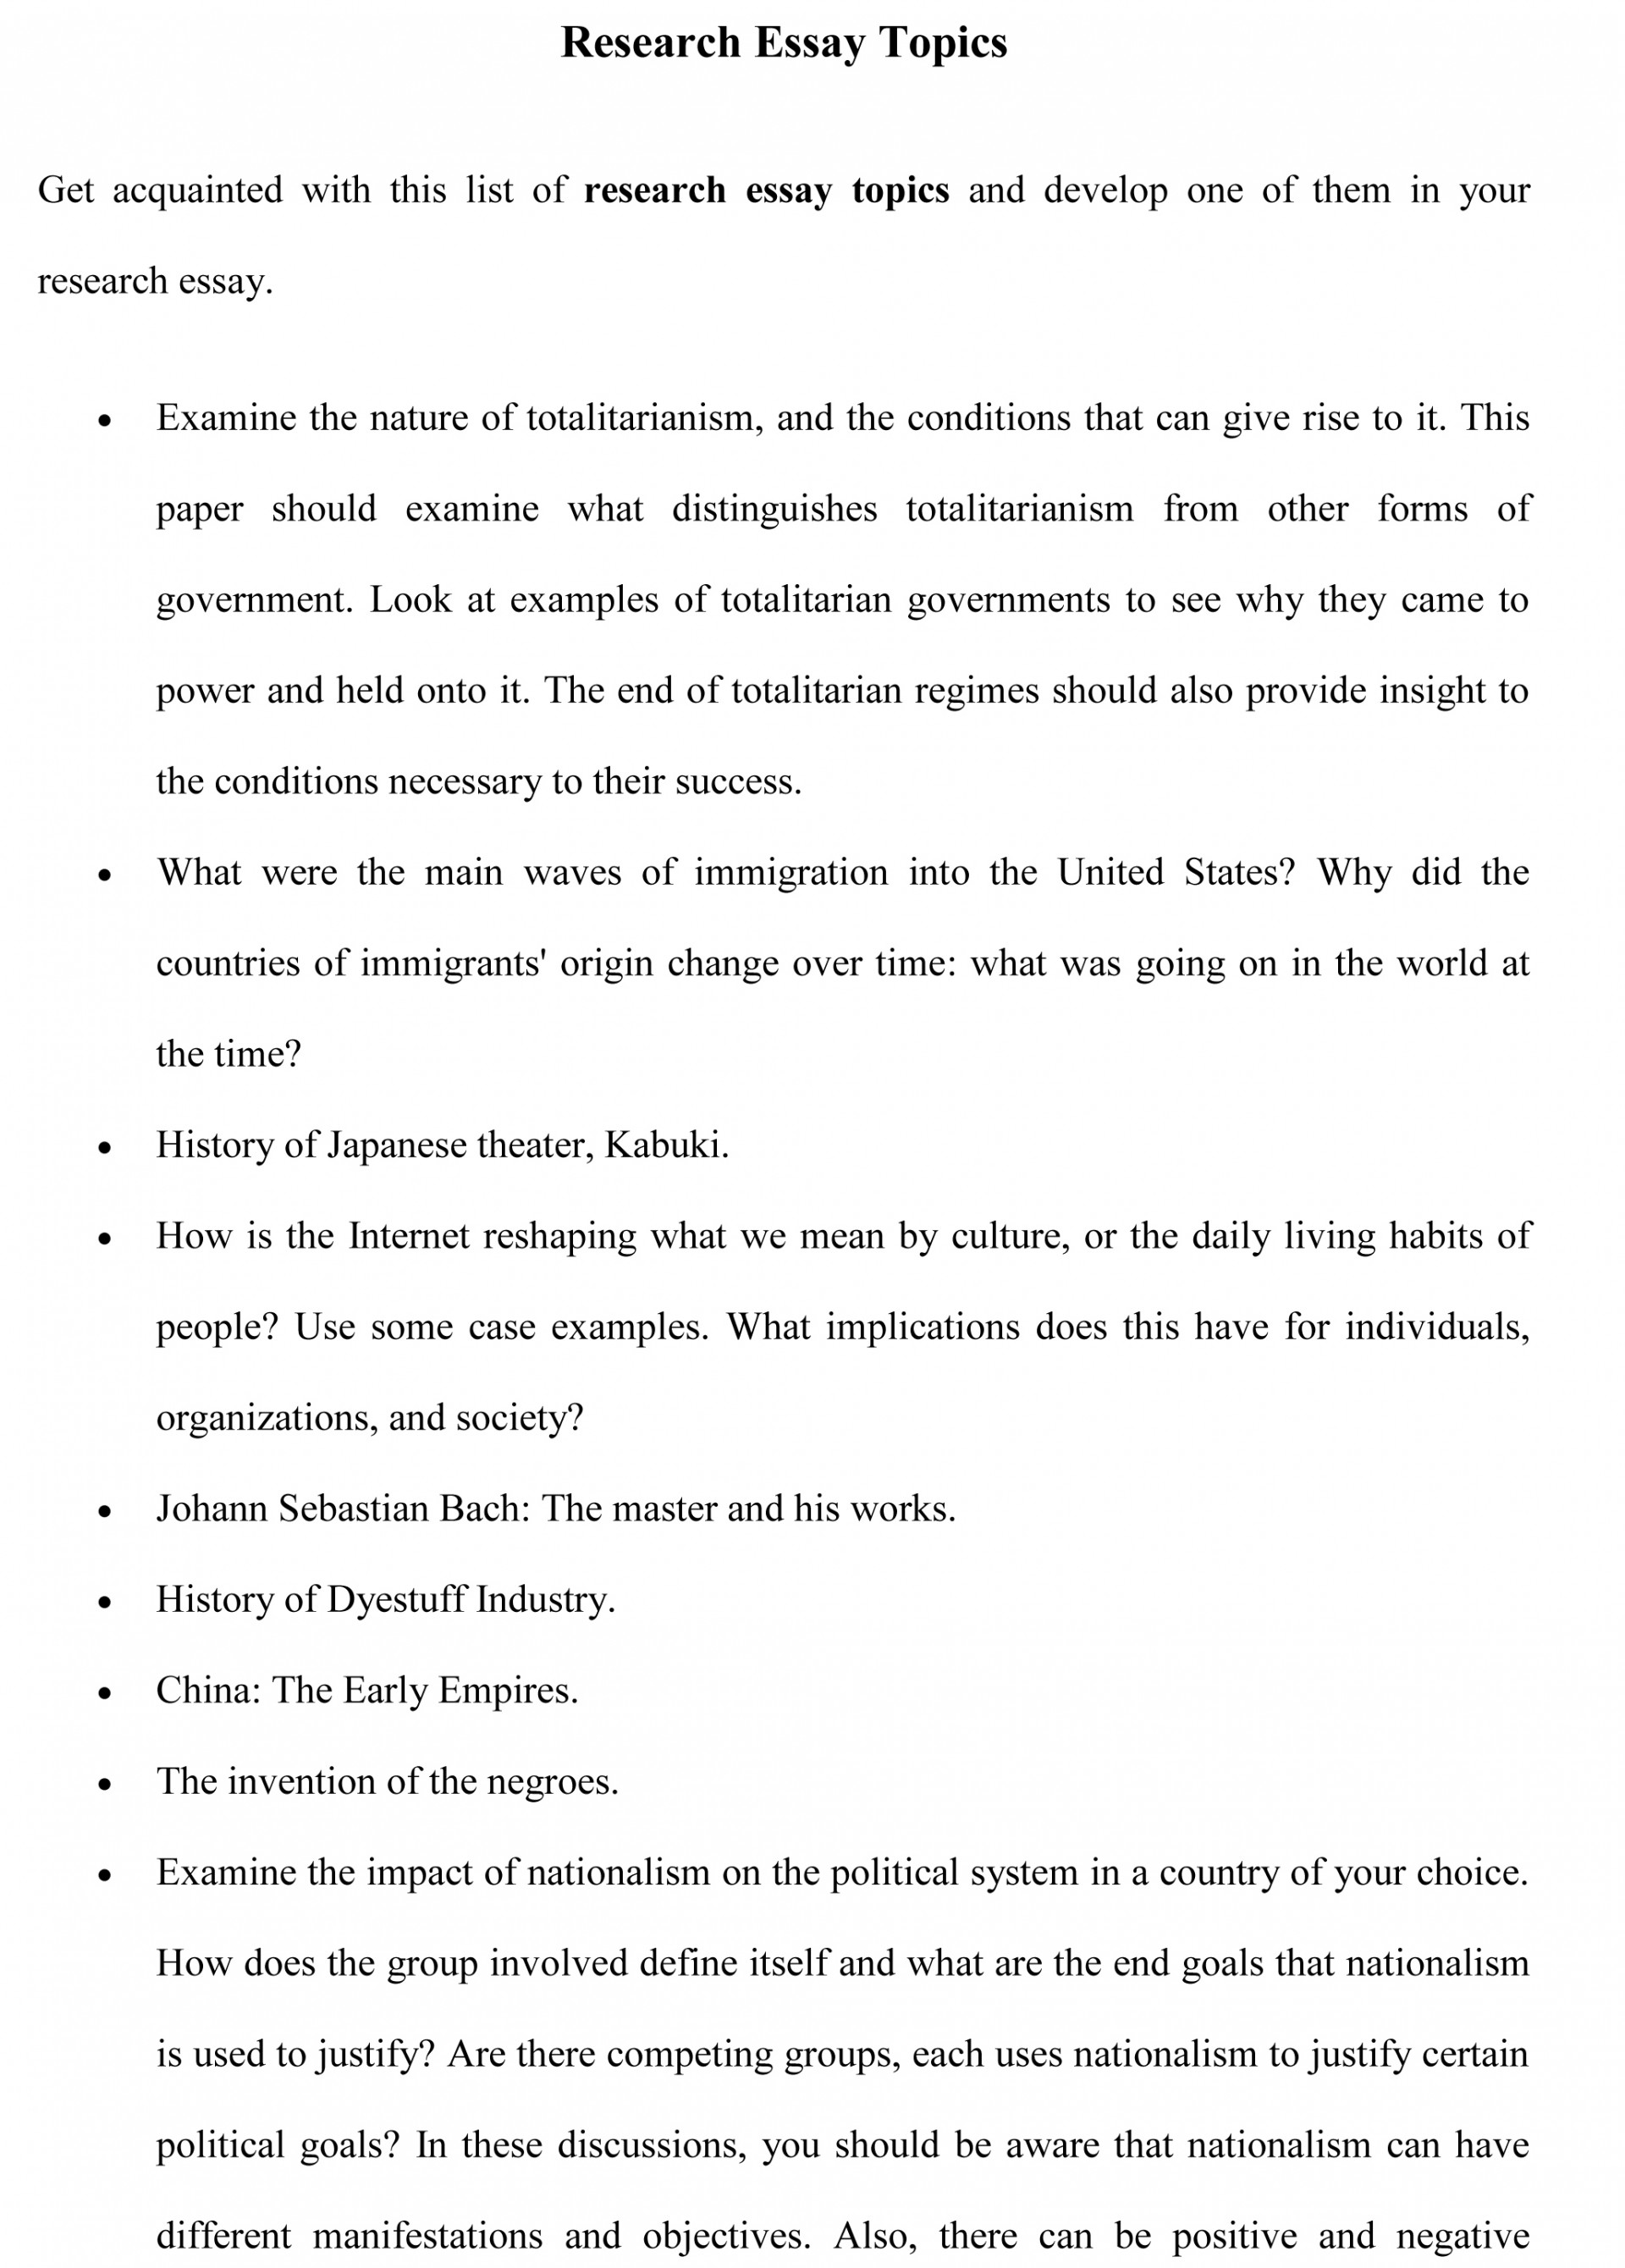 004 Business Research Paper Topics For College Students Essay Unique 1920